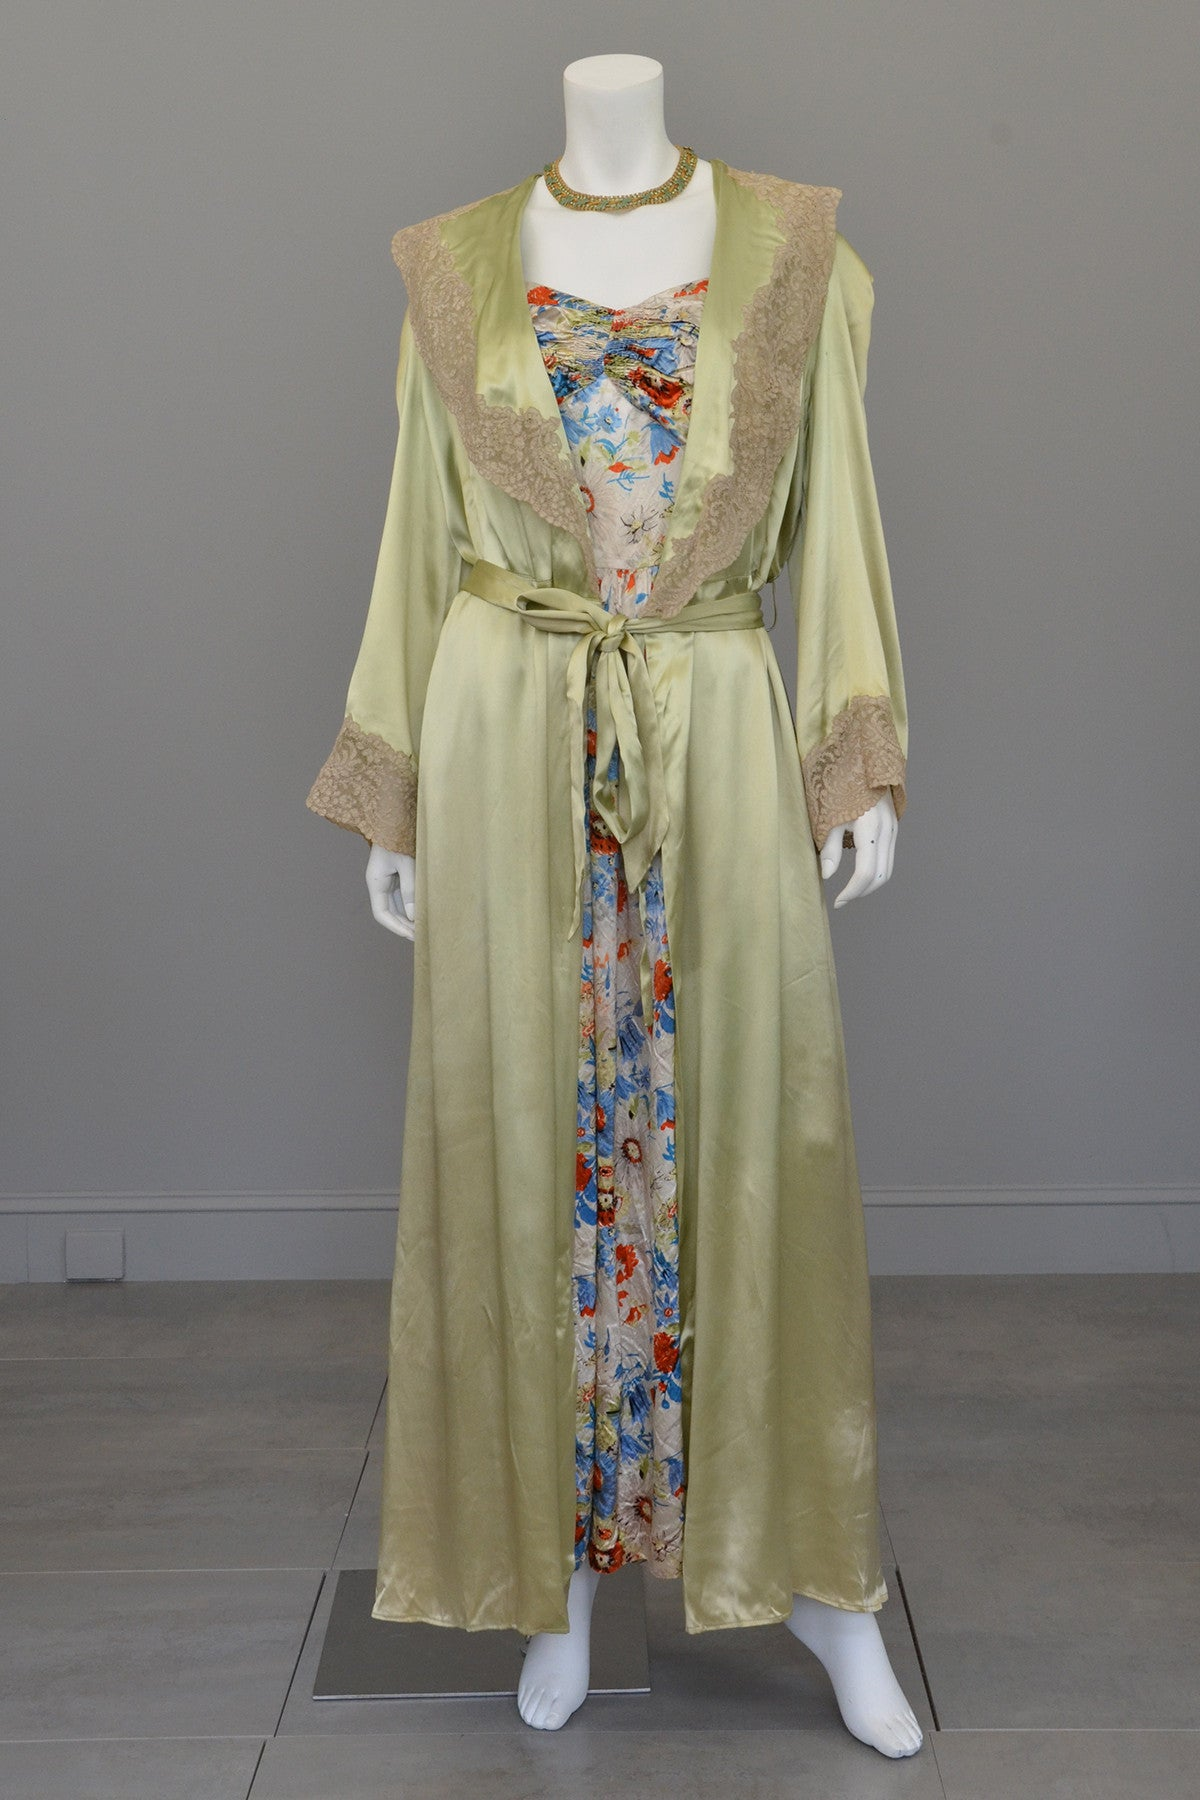 Vintage Avocado Green Satin and Lace Robe